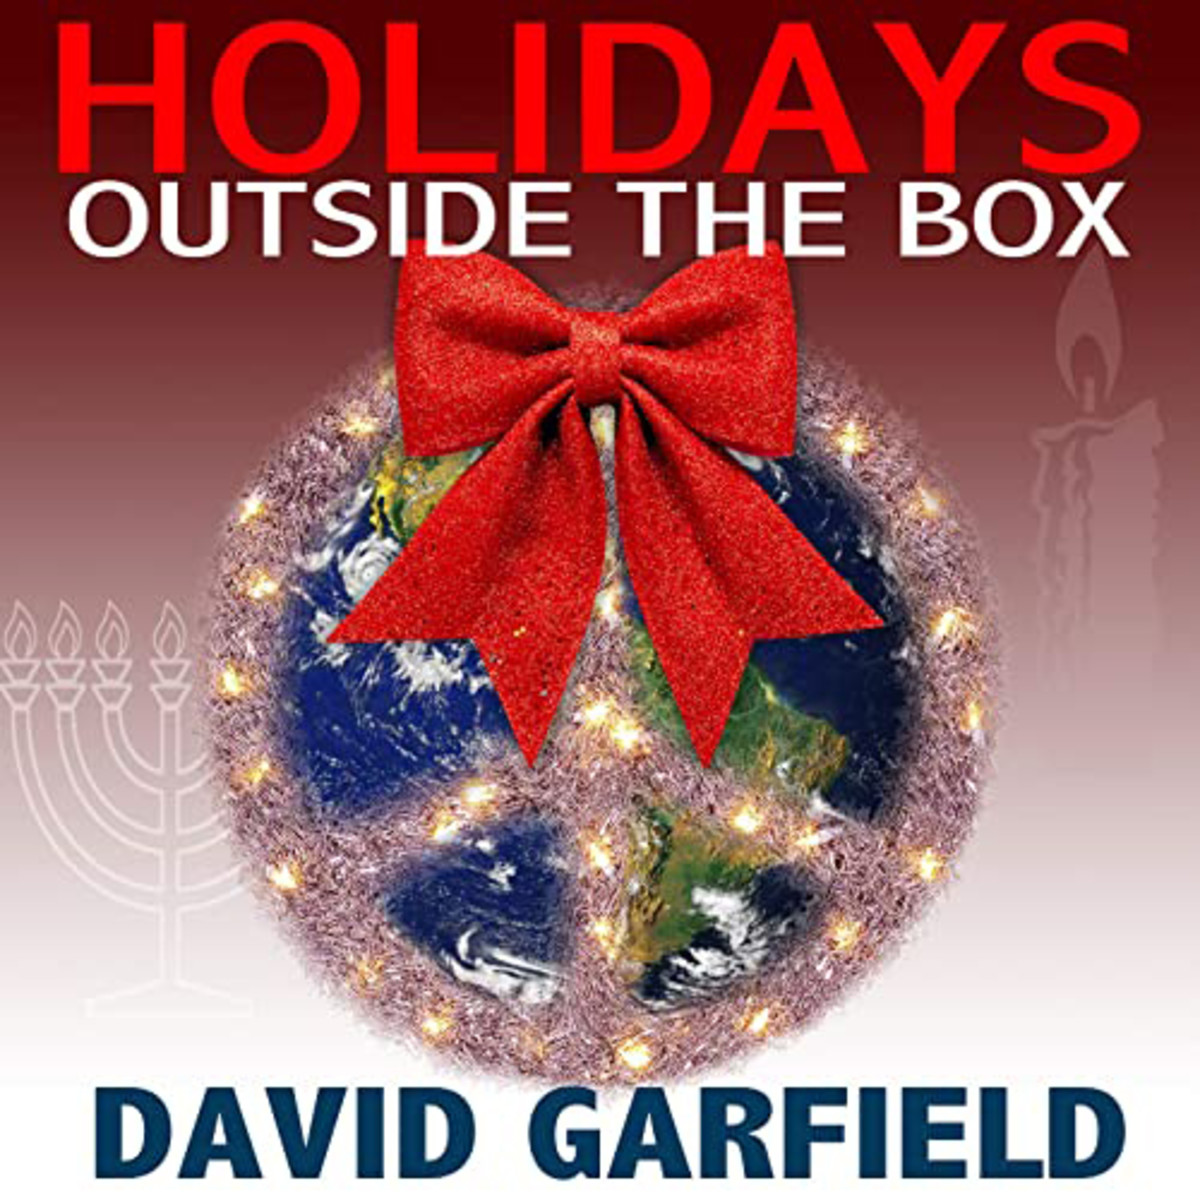 """Keyboardist David Garfield brings more diversity to the holidays with """"Holidays Outside the Box."""""""